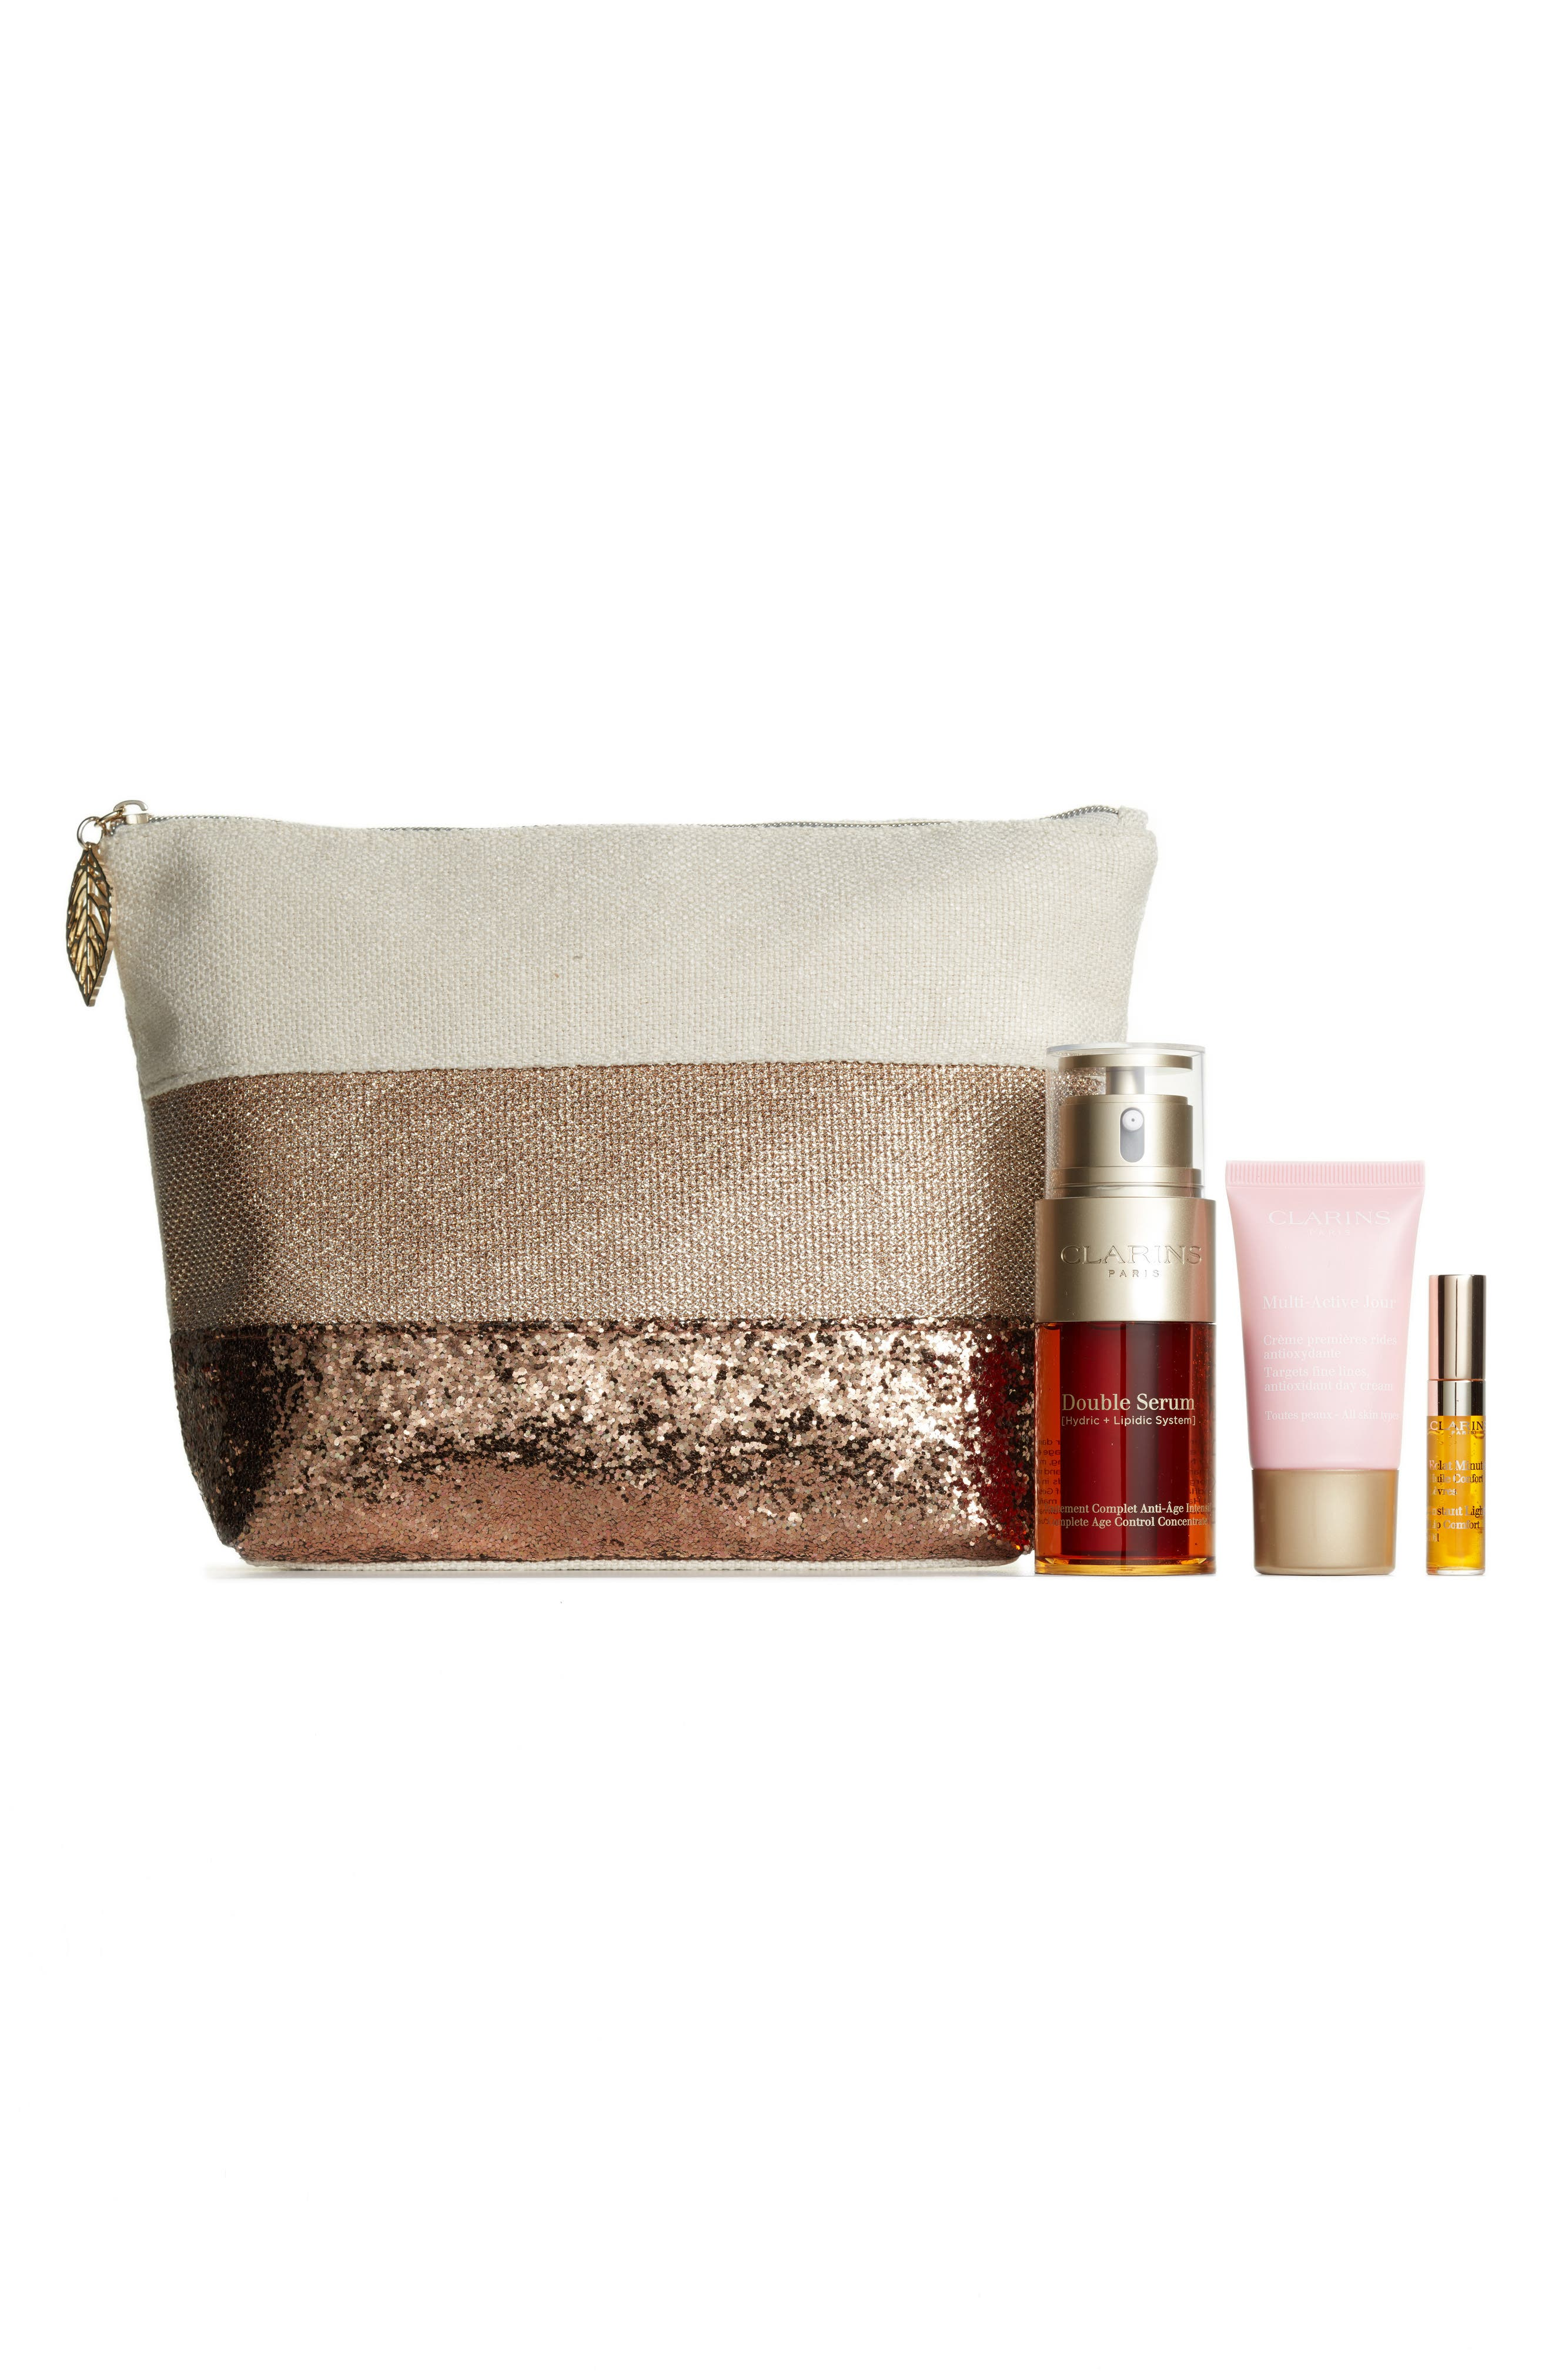 Main Image - Clarins Multi-Active Double Serum Set (Over $115 Value)